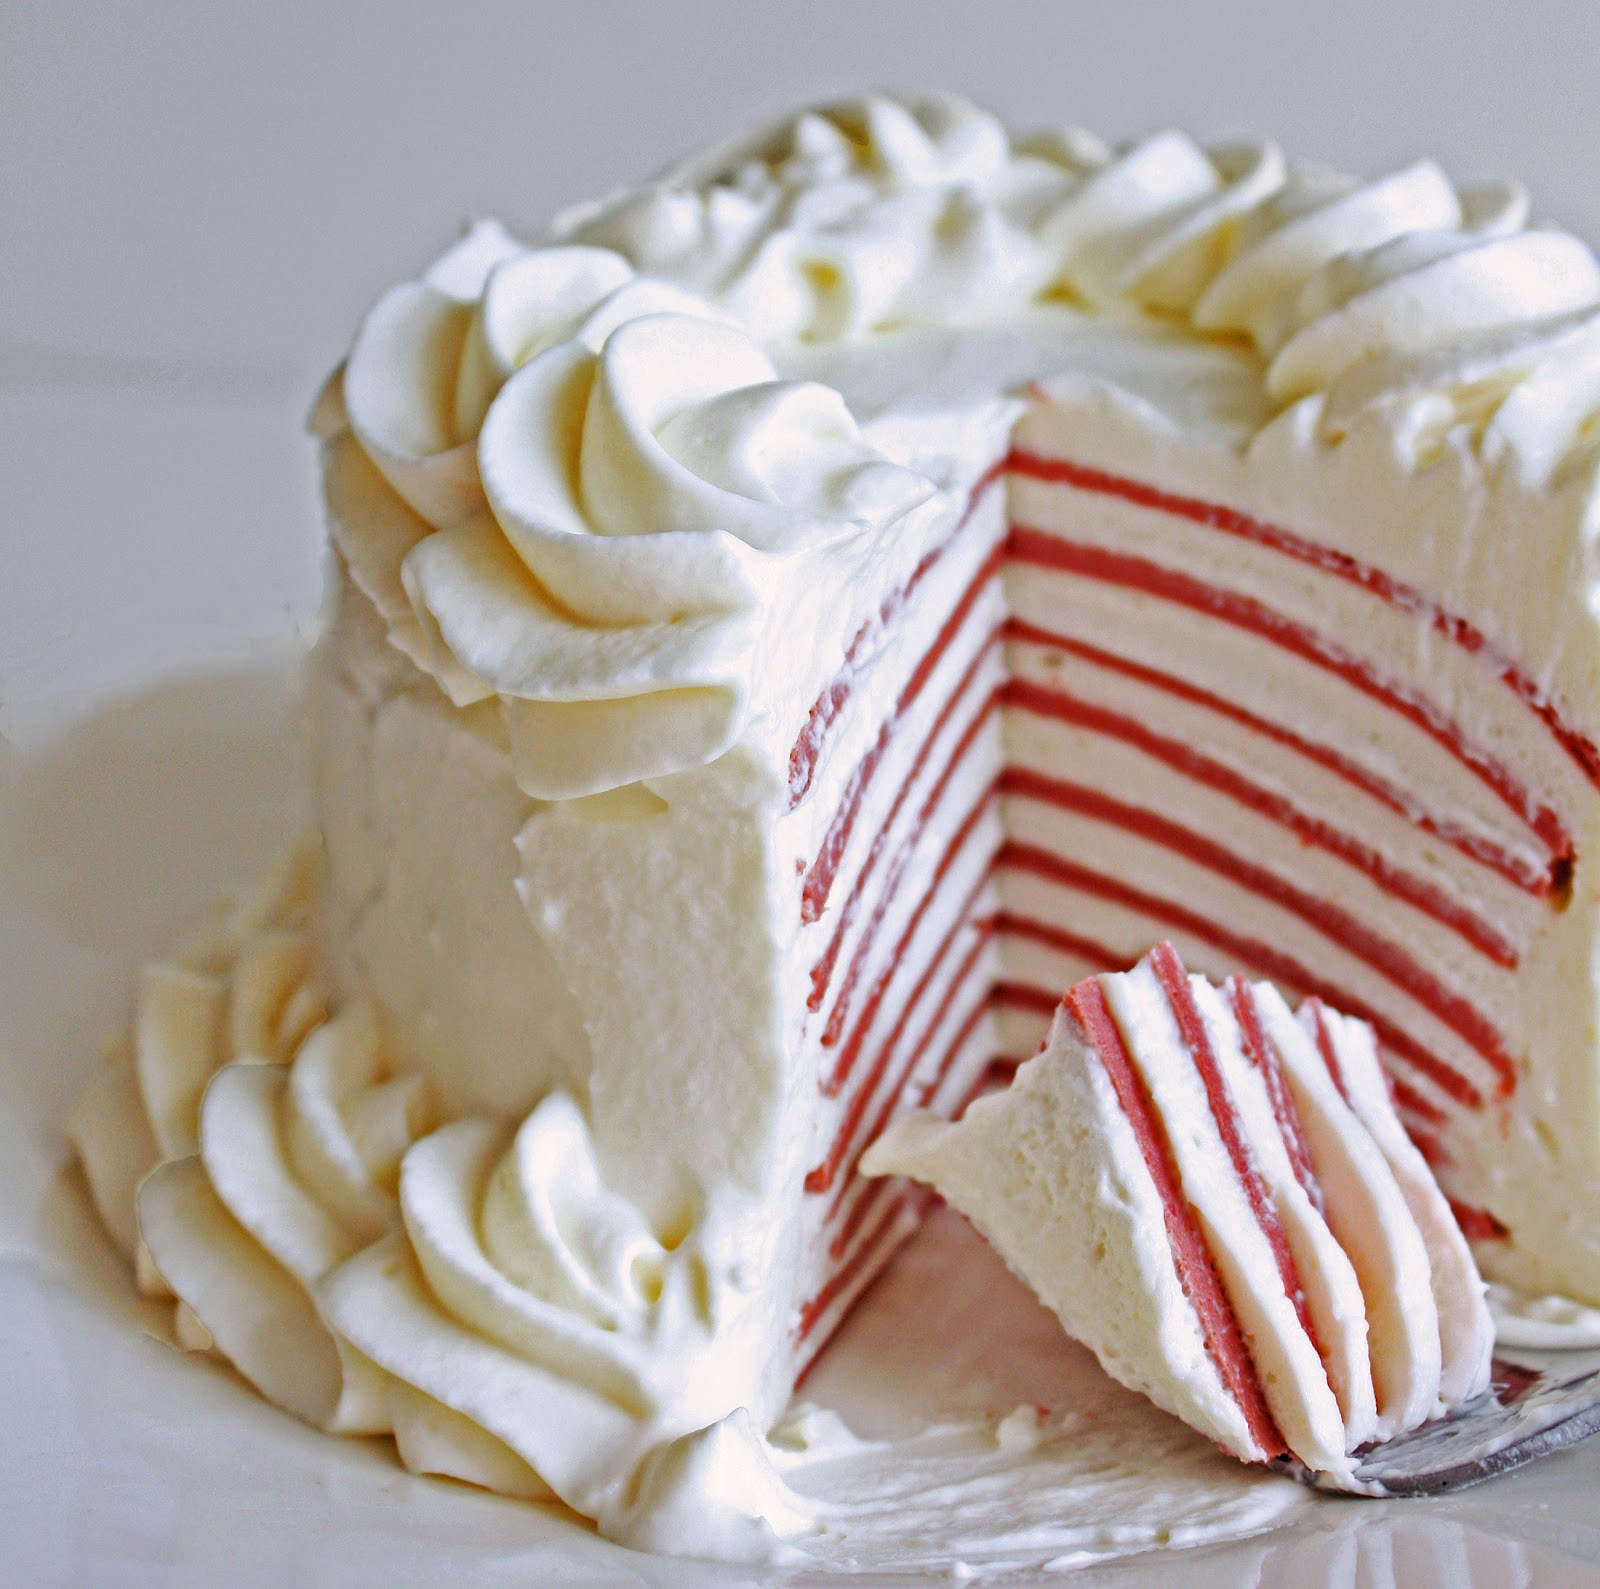 Low Carb Cake Recipes  Low Carb Red Velvet Crepe Cake